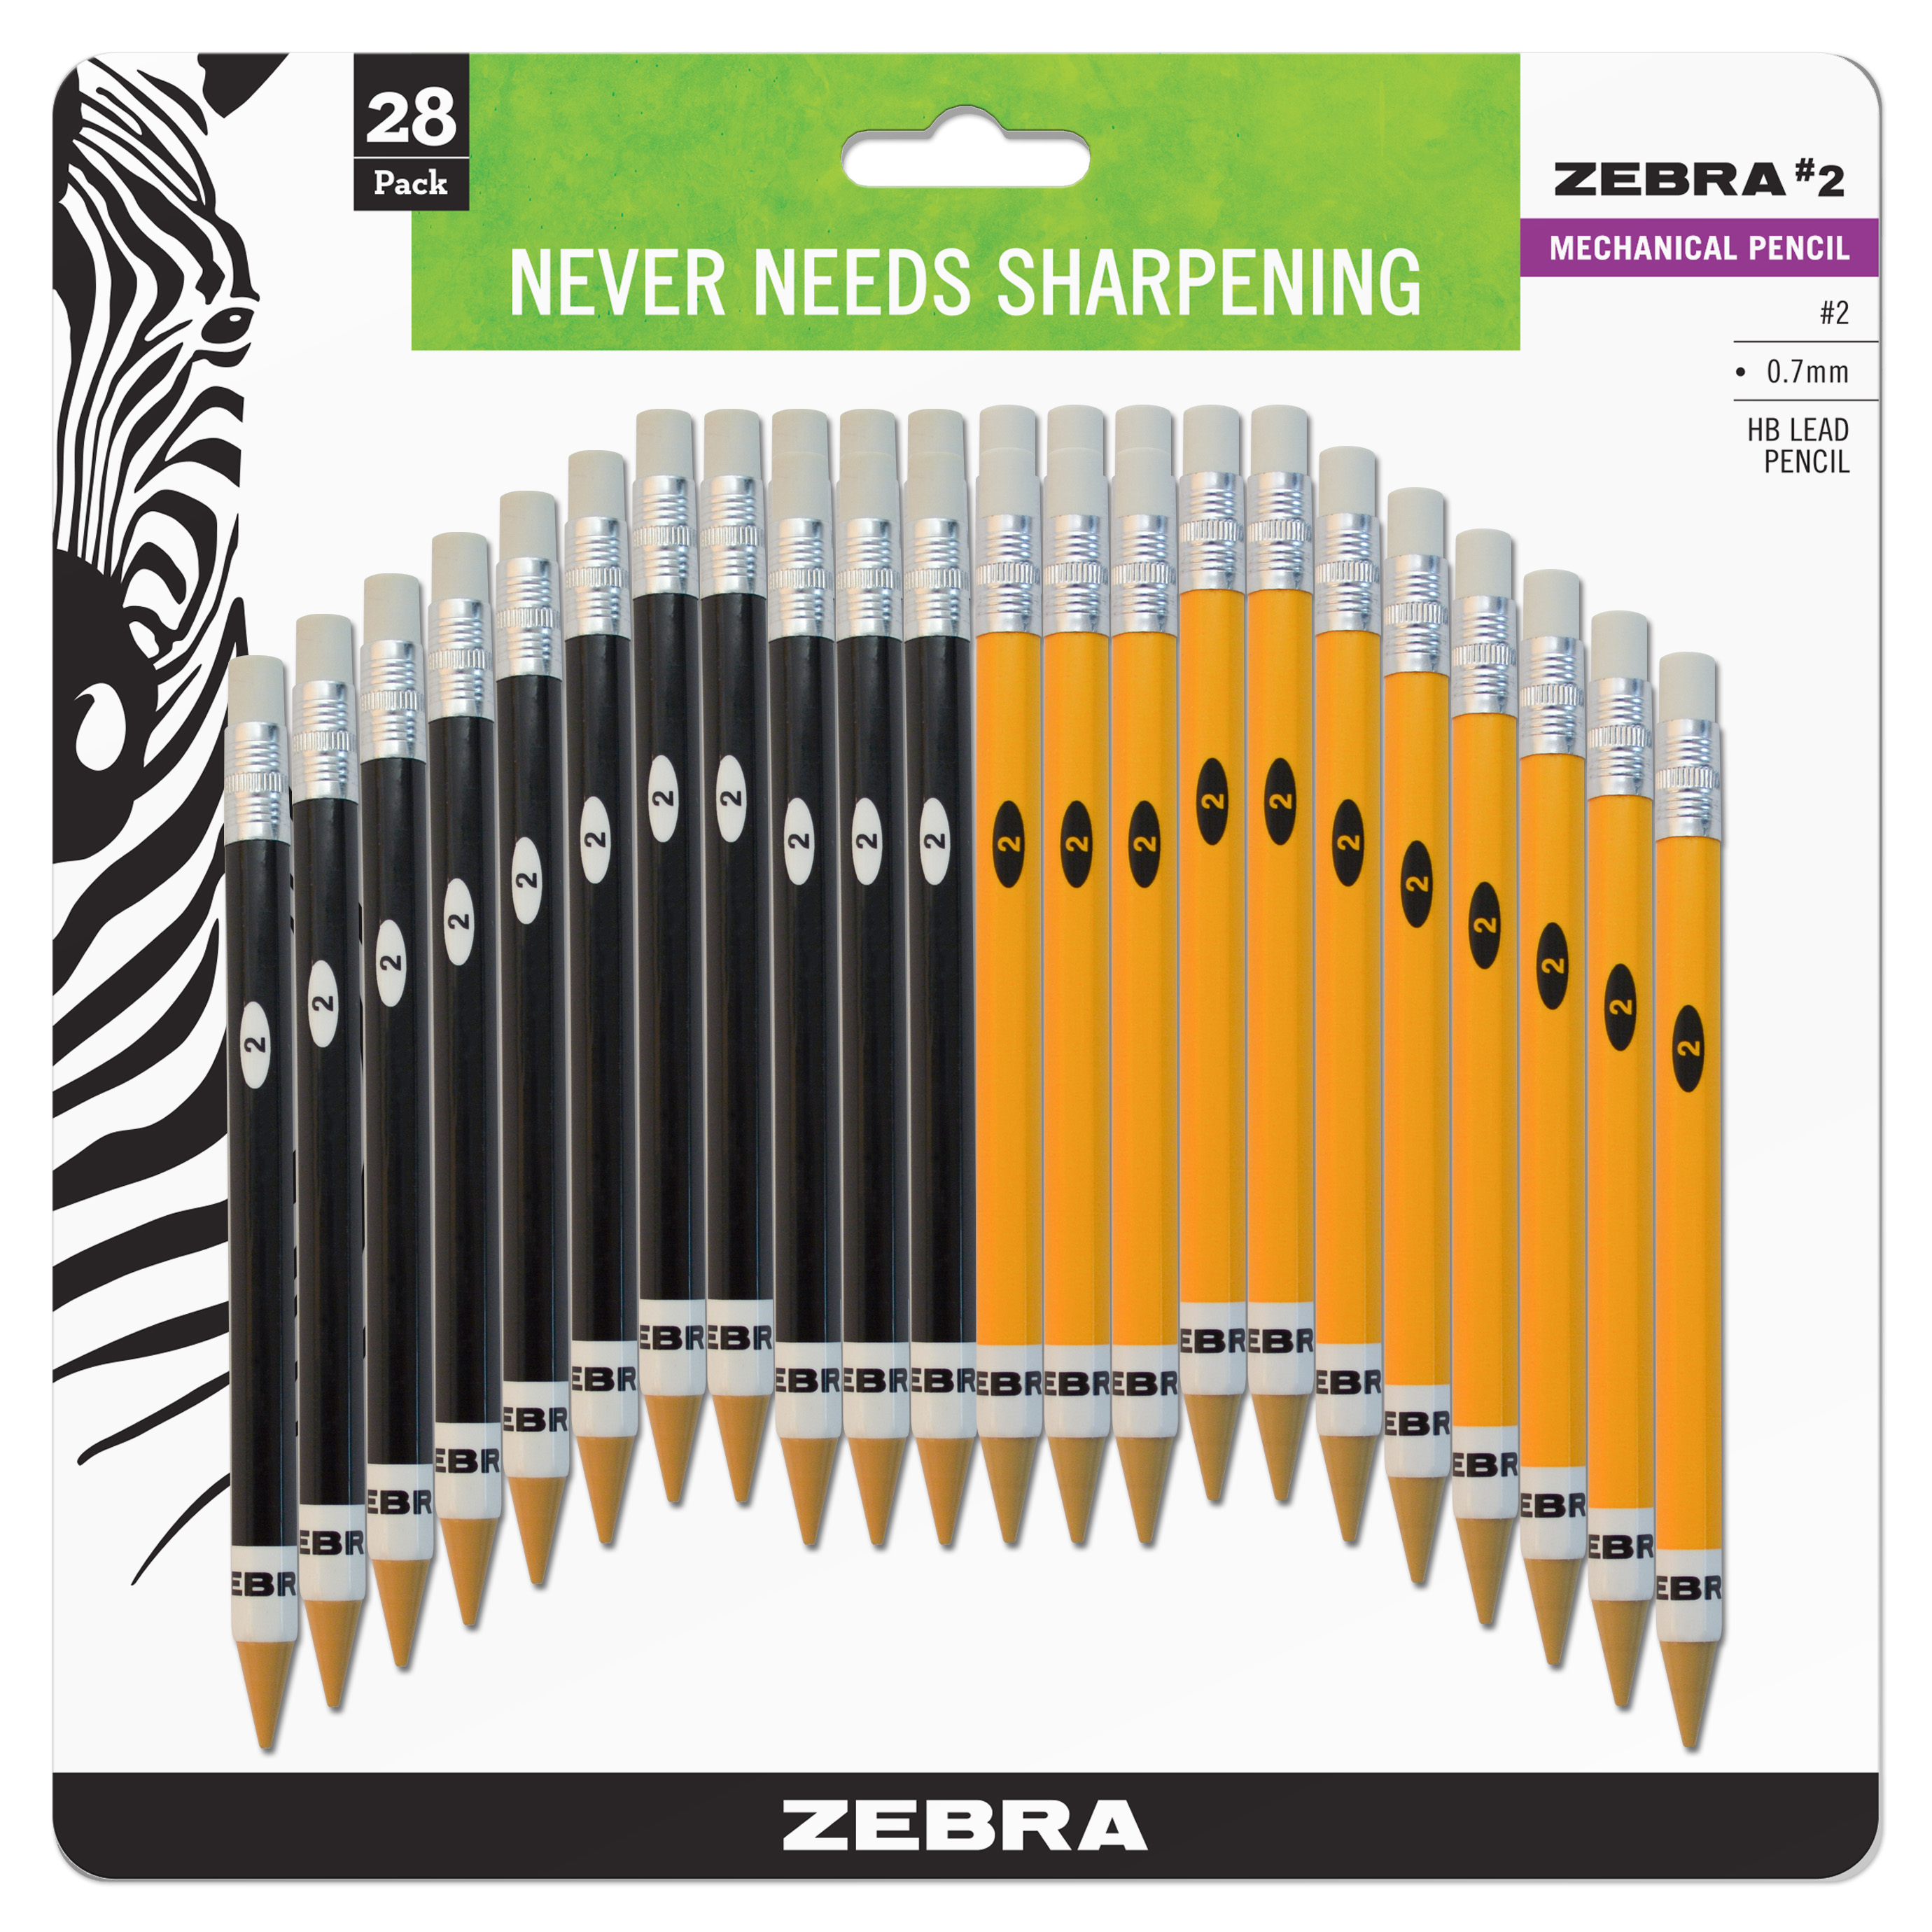 Zebra #2 Mechanical Pencil, 0.7mm Point Size, Standard HB Lead, Assorted Barrel Colors, 28-Count